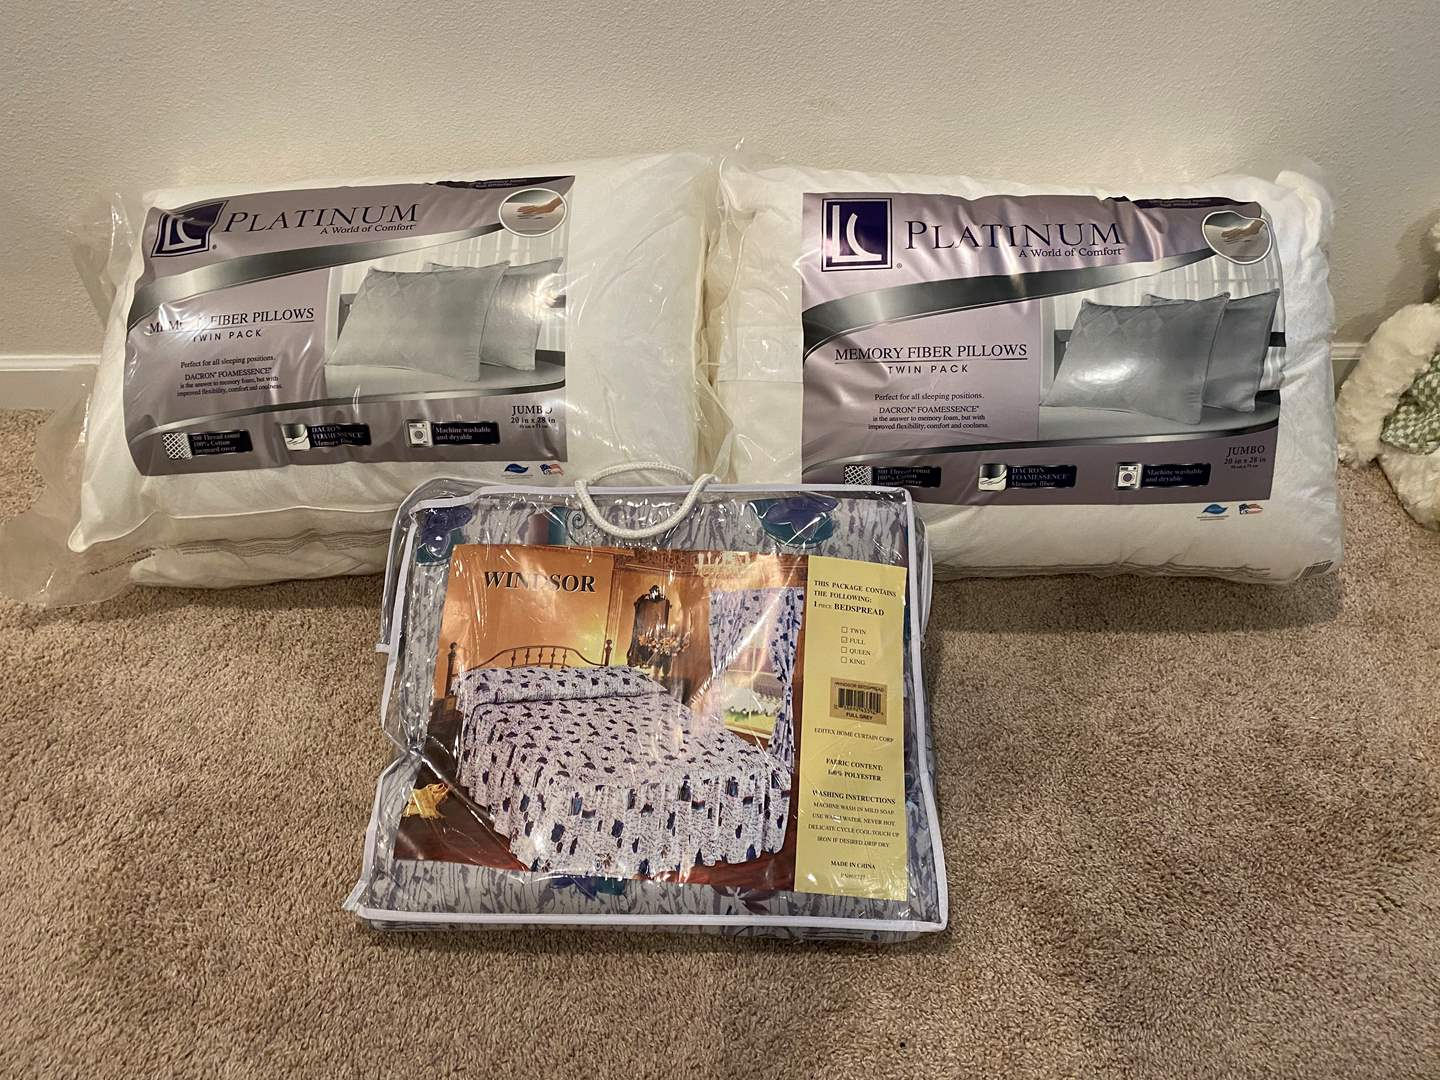 Lot # 323 - Two Packs of New Platinum Memory Fiber Pillows, New Full Sized Bed Spread (main image)